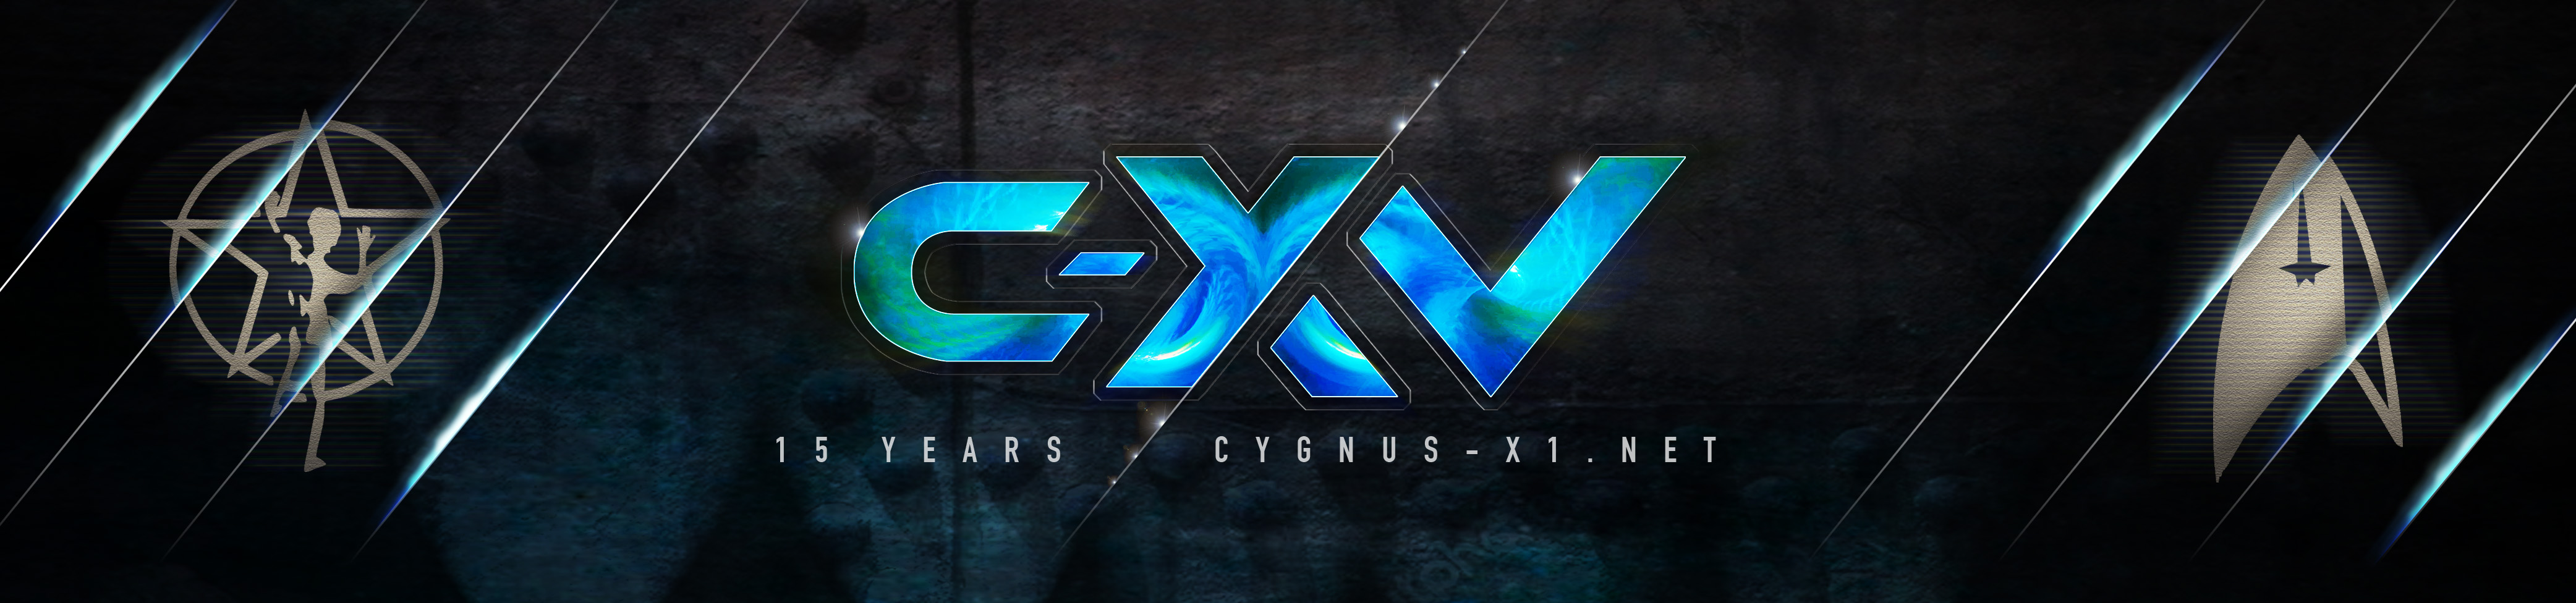 Celebrating 15 Years Online - Cygnus-X1.Net